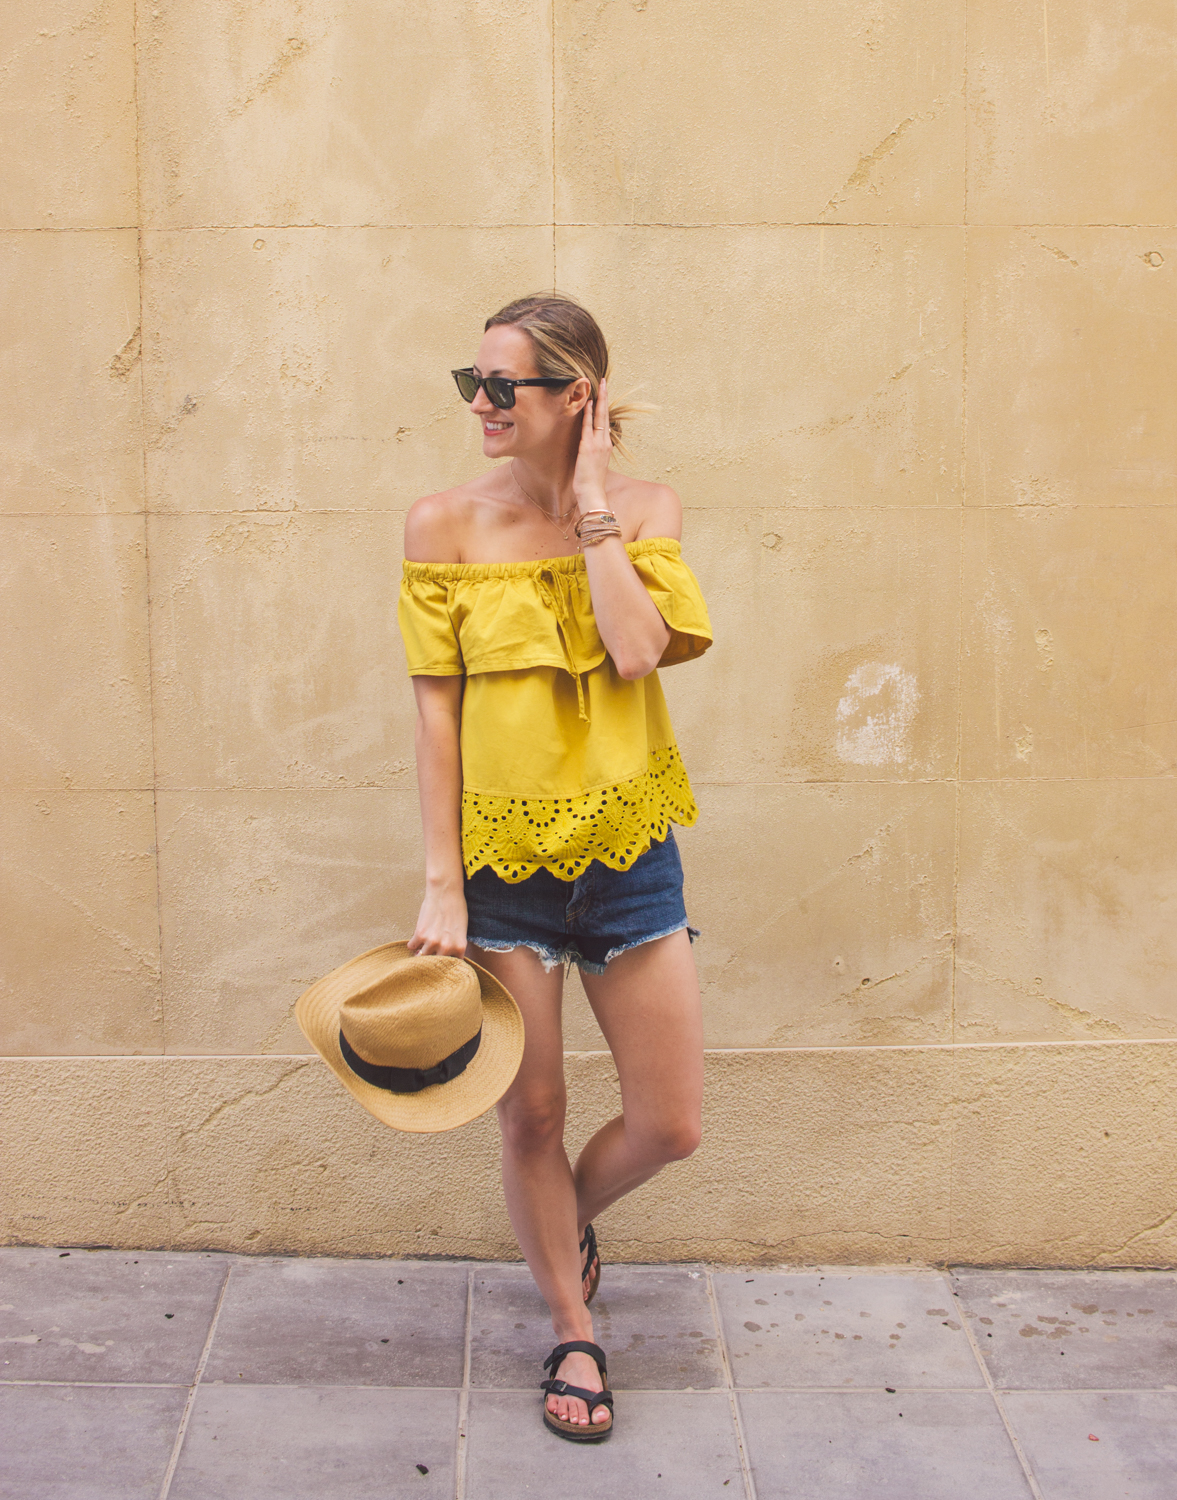 livvyland-blog-olivia-watson-fashion-blogger-austin-texas-cartagena-spain-princess-cruises-mediterranean-madewell-off-shoulder-top-17